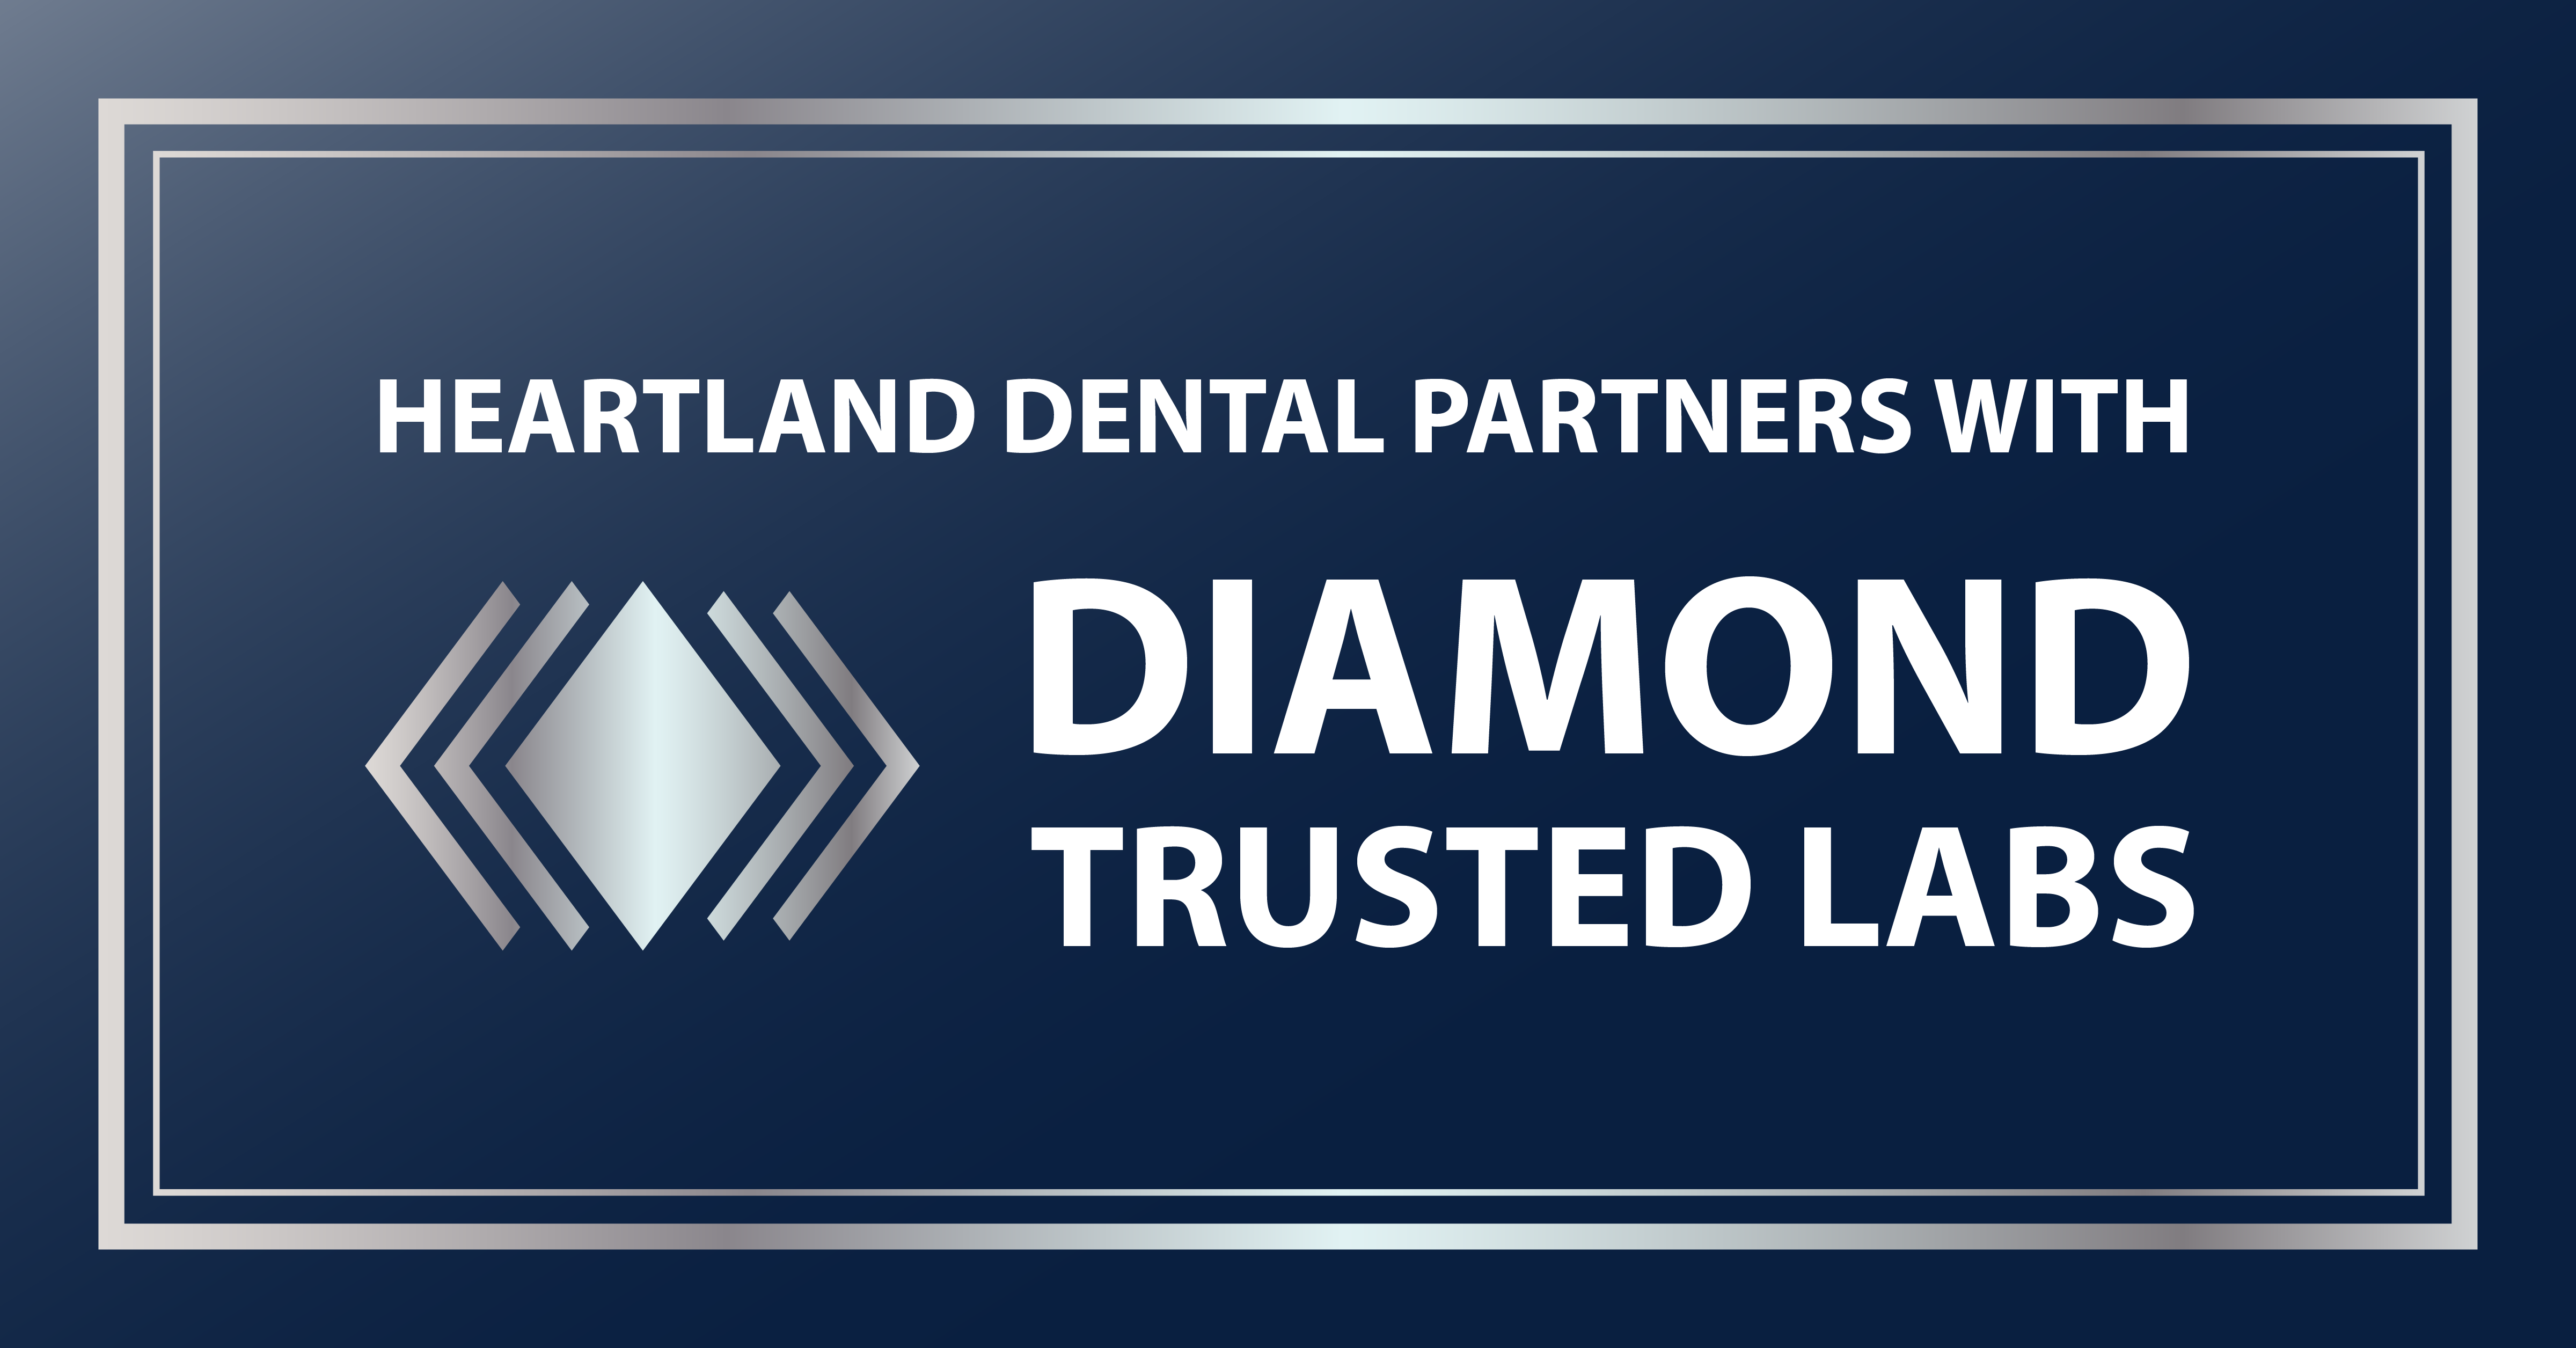 Heartland Dental Shines Bright with Diamond Trusted Lab Partner Expansion